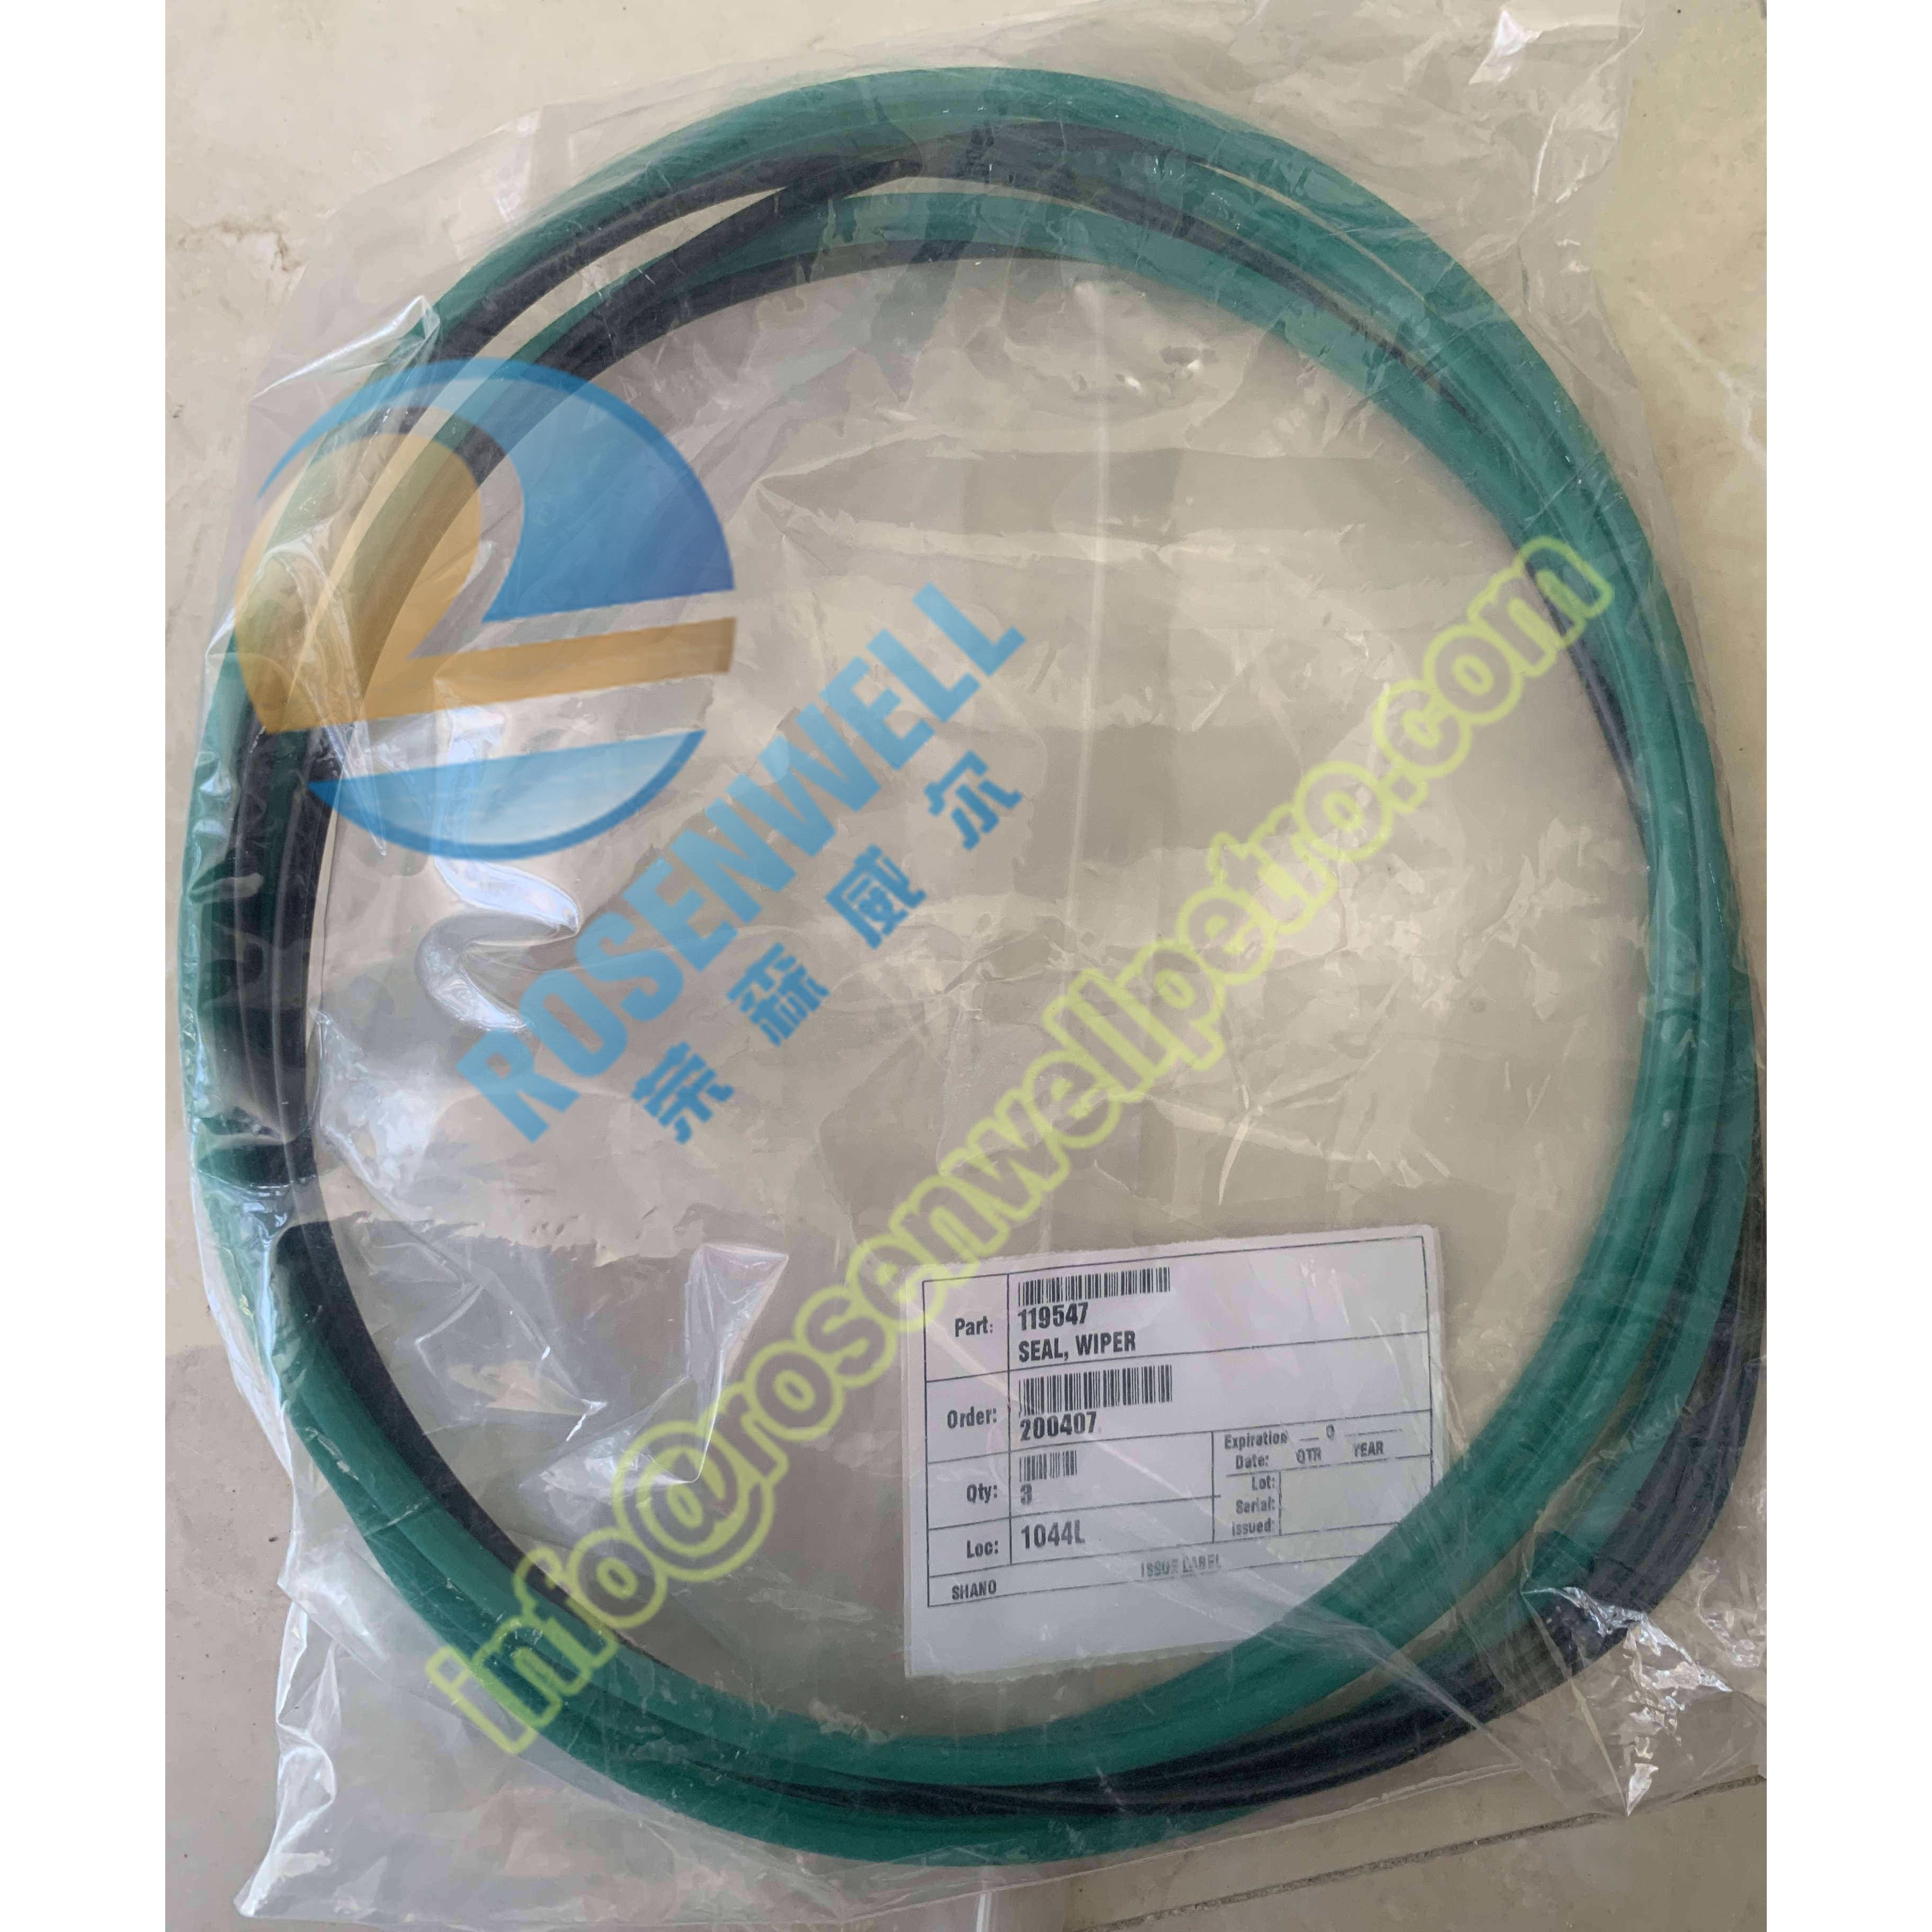 Nov Varco TDS High Quality GYLD RING ROTARY 11.50 ROD 30119143 For Top Drive